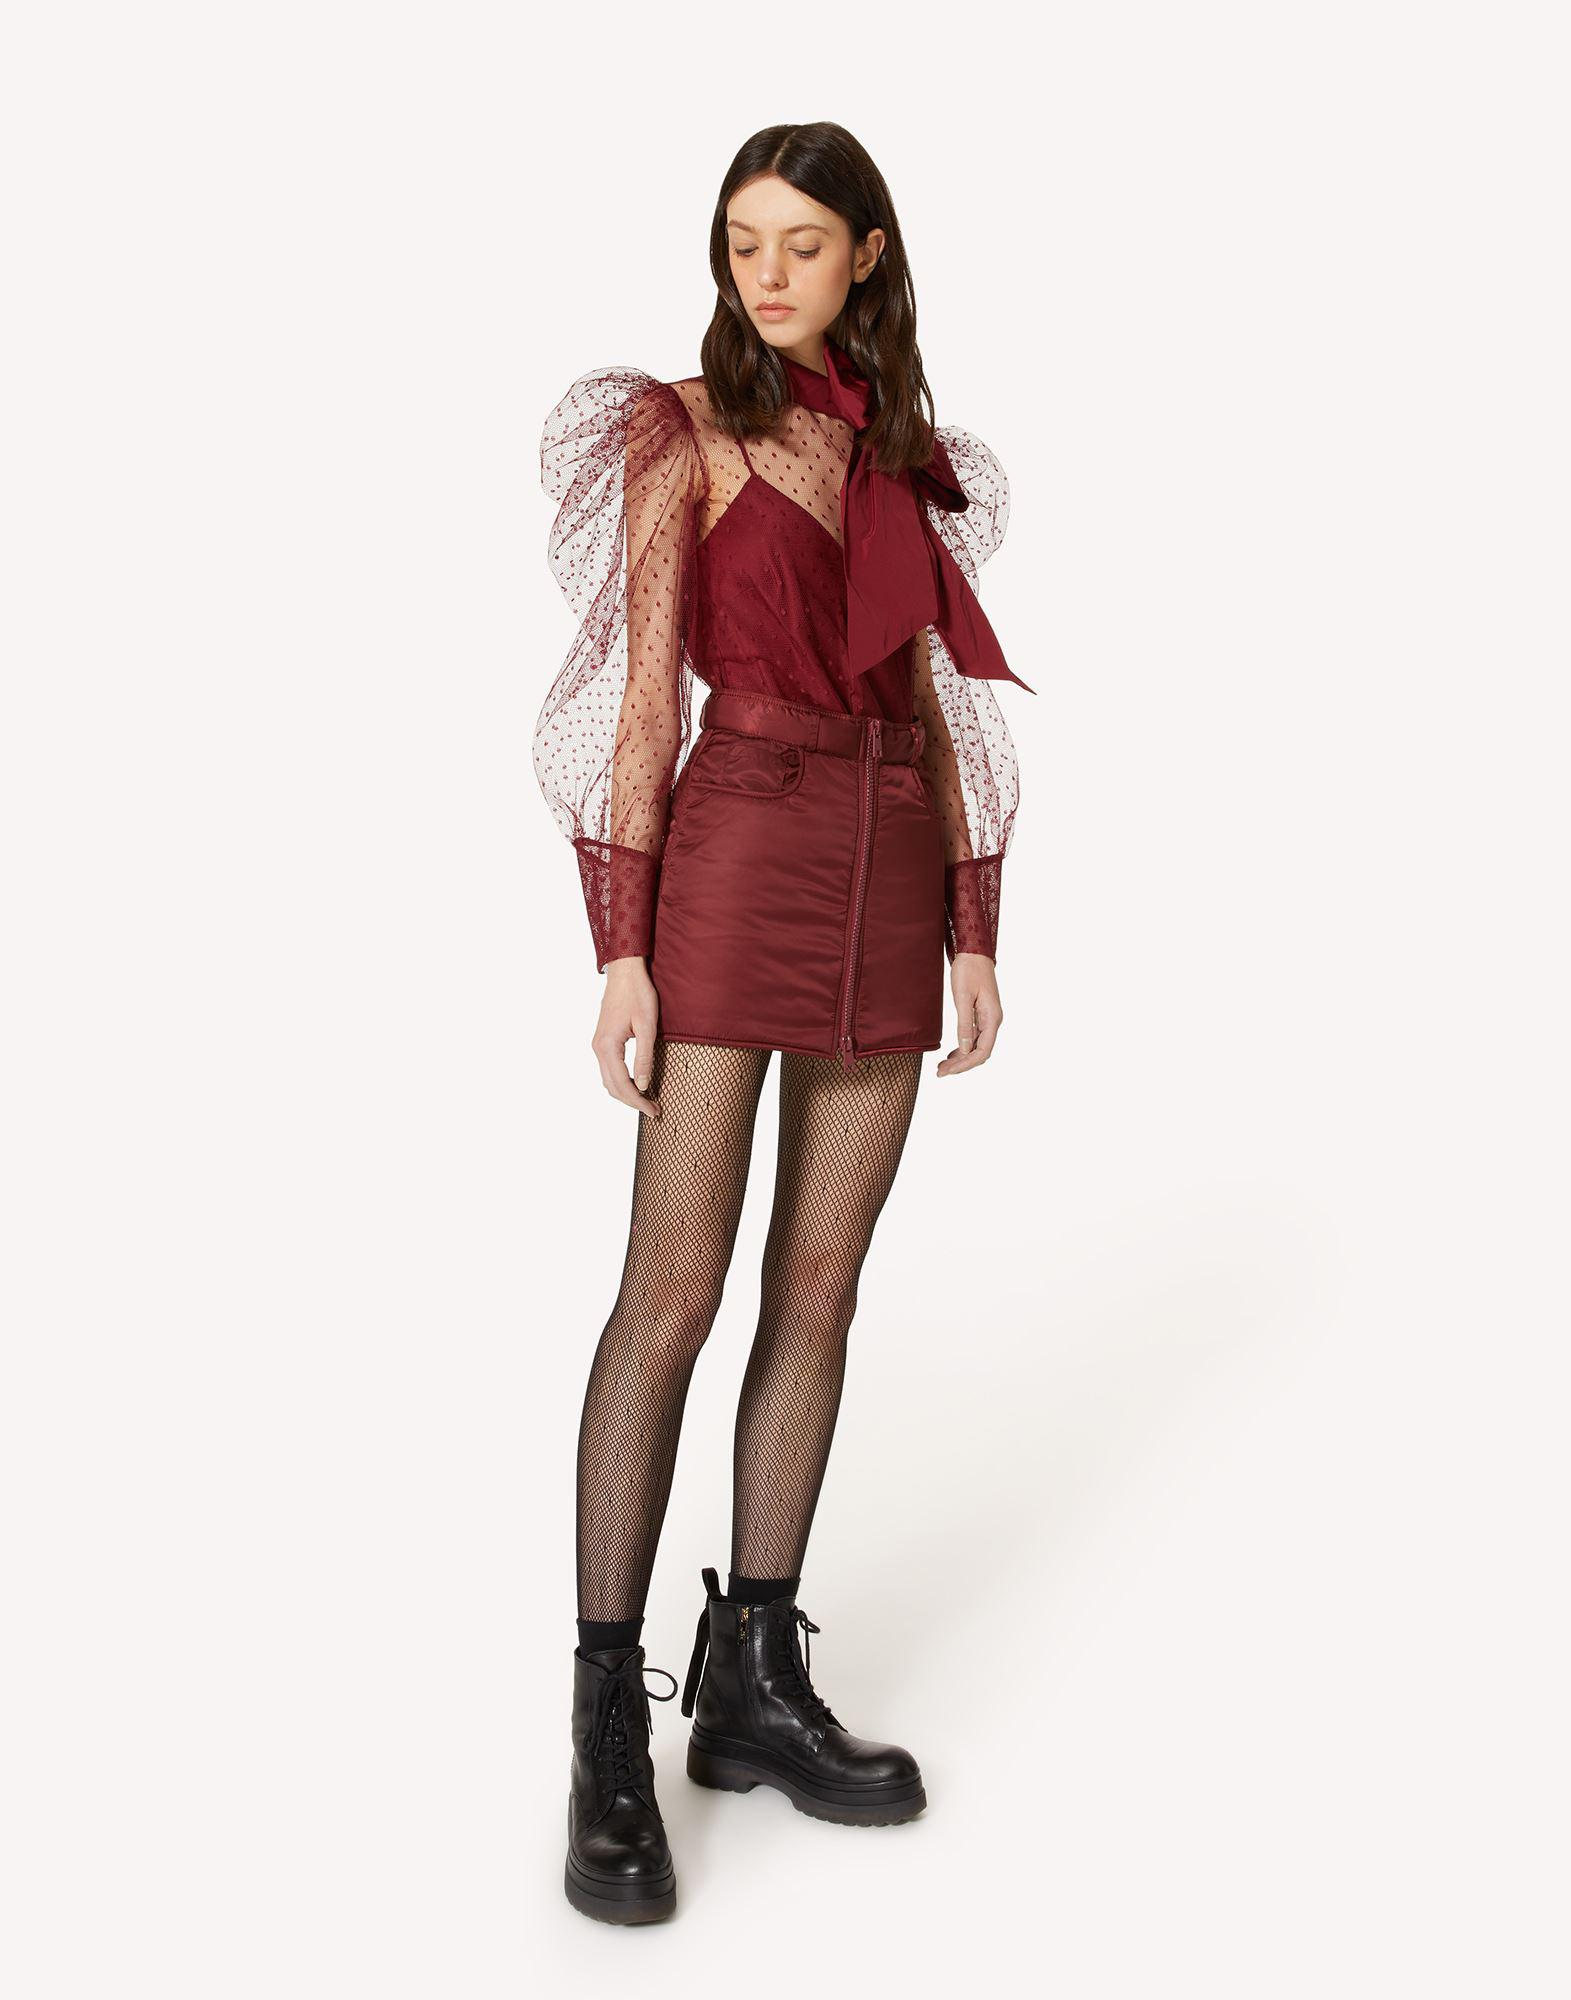 THE BLACK TAG. - POINT D'ESPRIT TULLE AND TAFFETA TOP 2